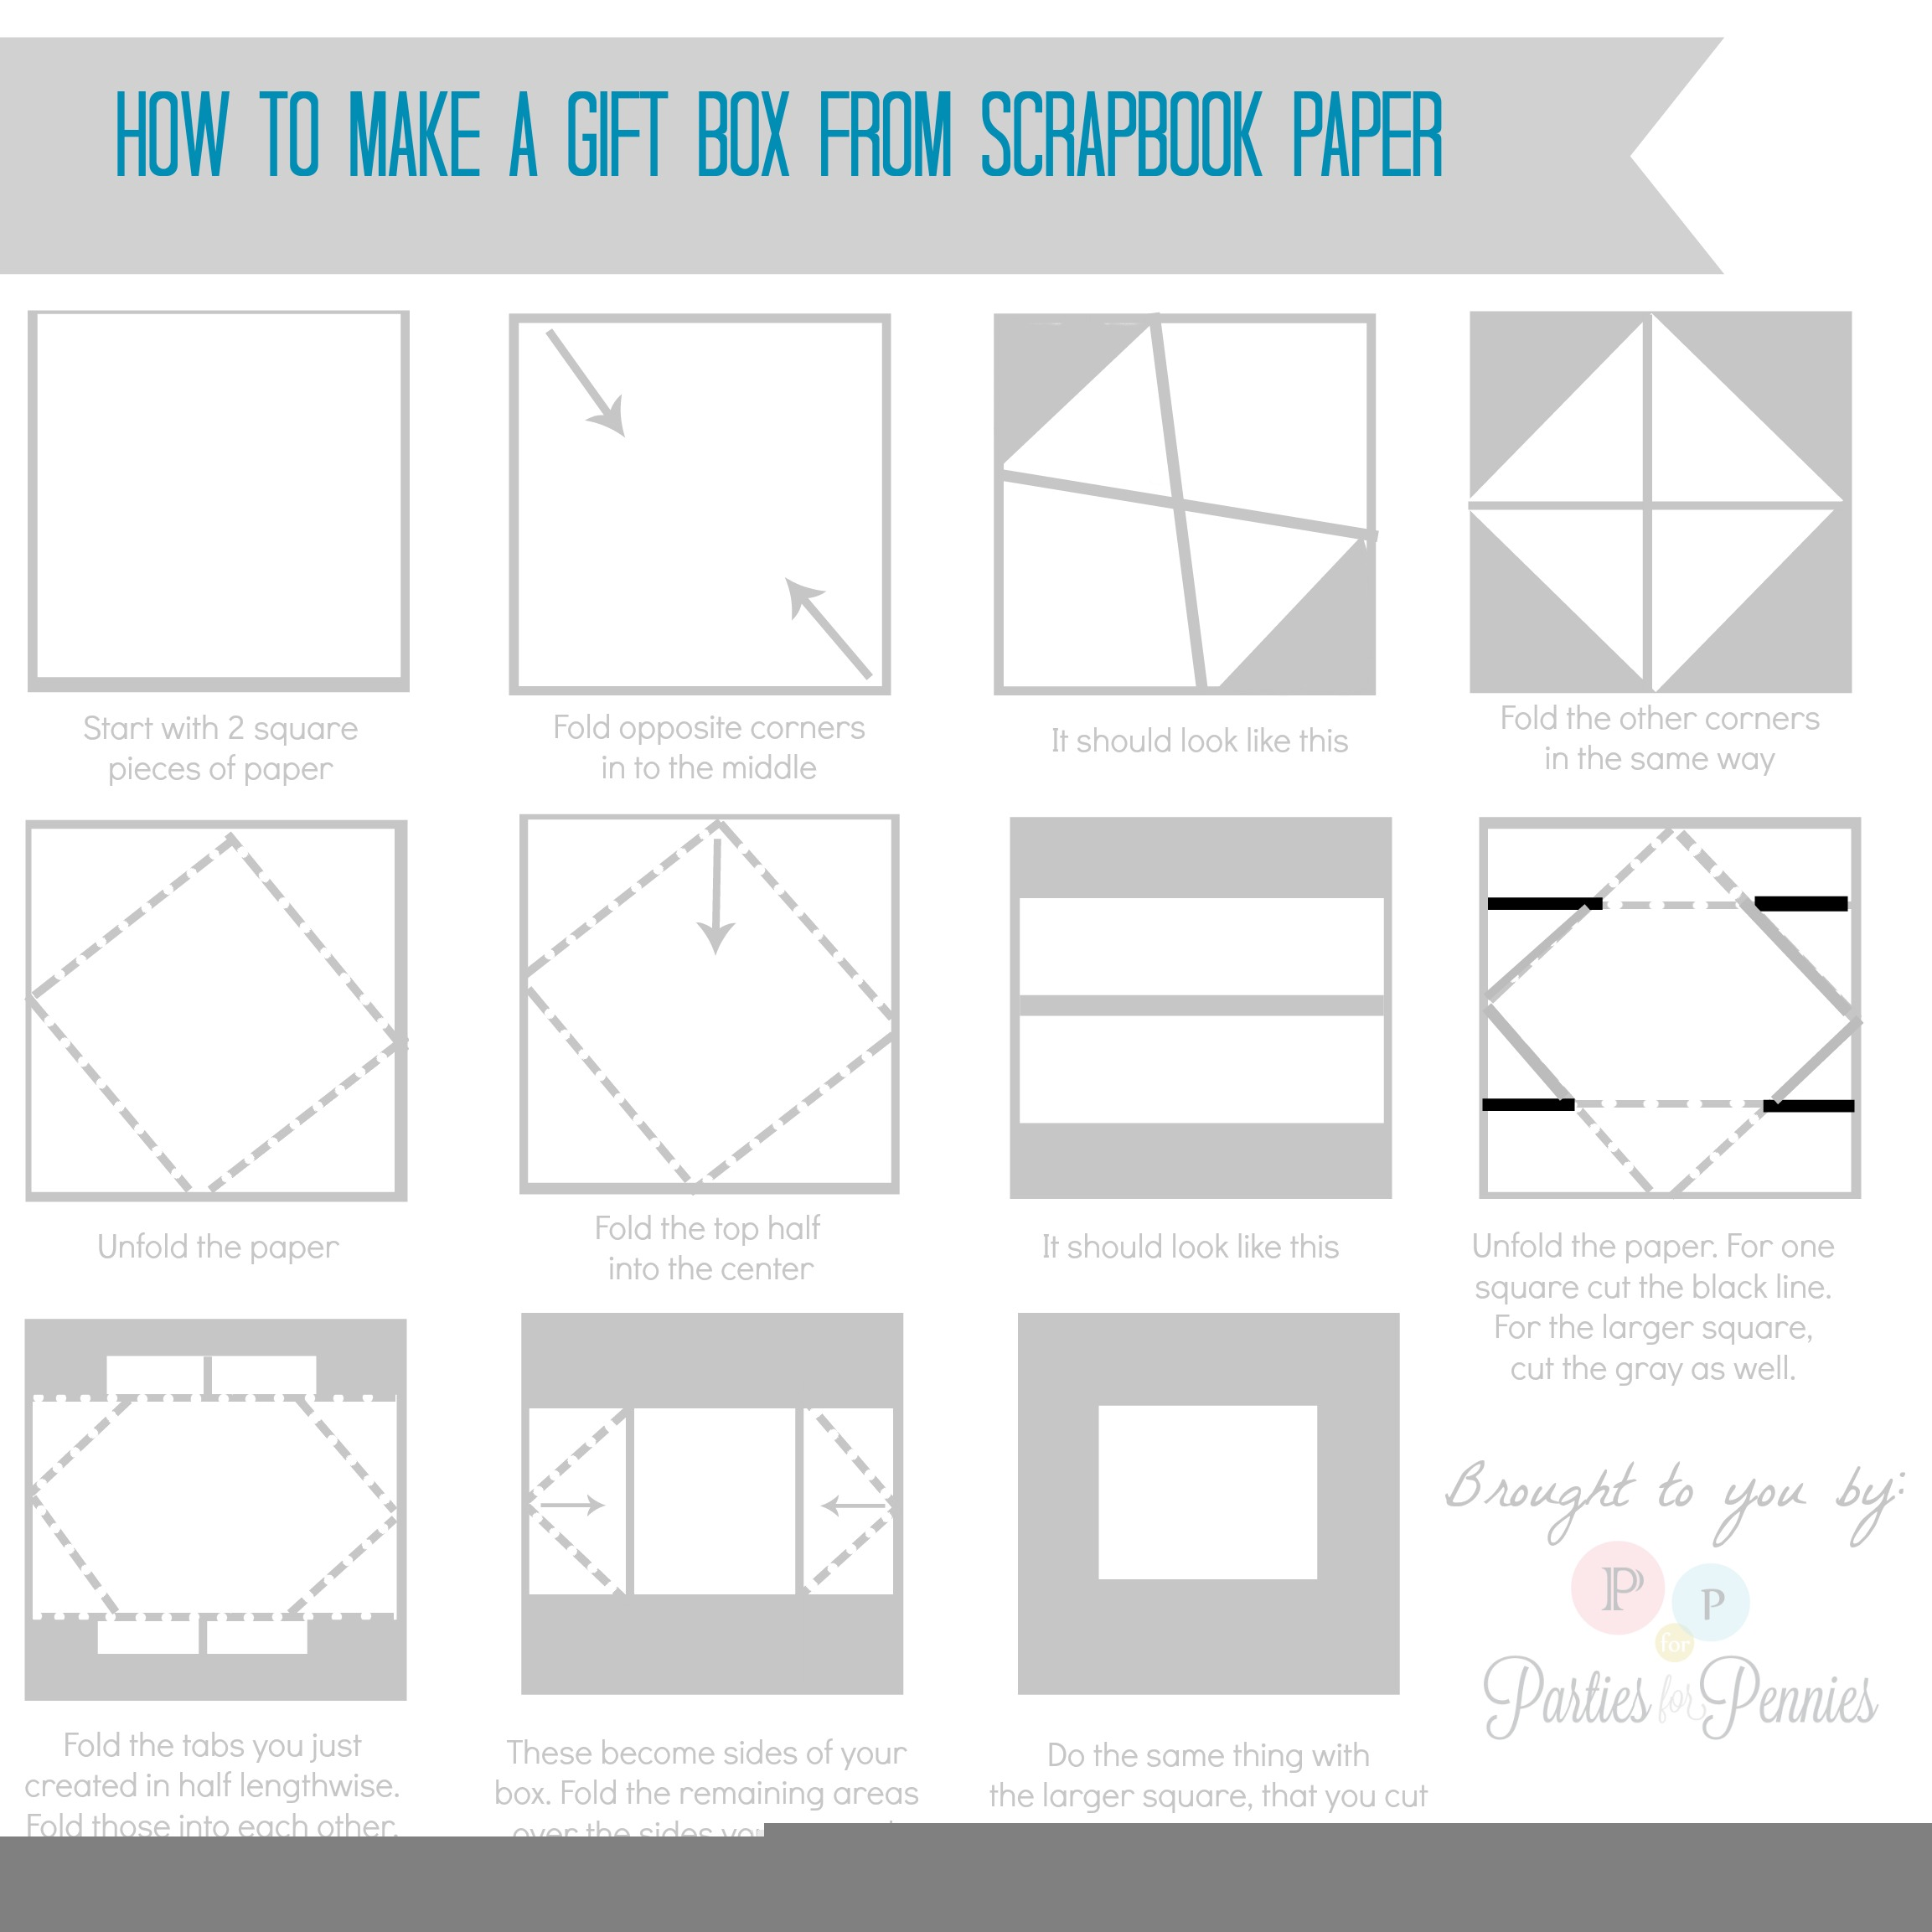 Related Keywords & Suggestions for How To Make An Origami Paper Box